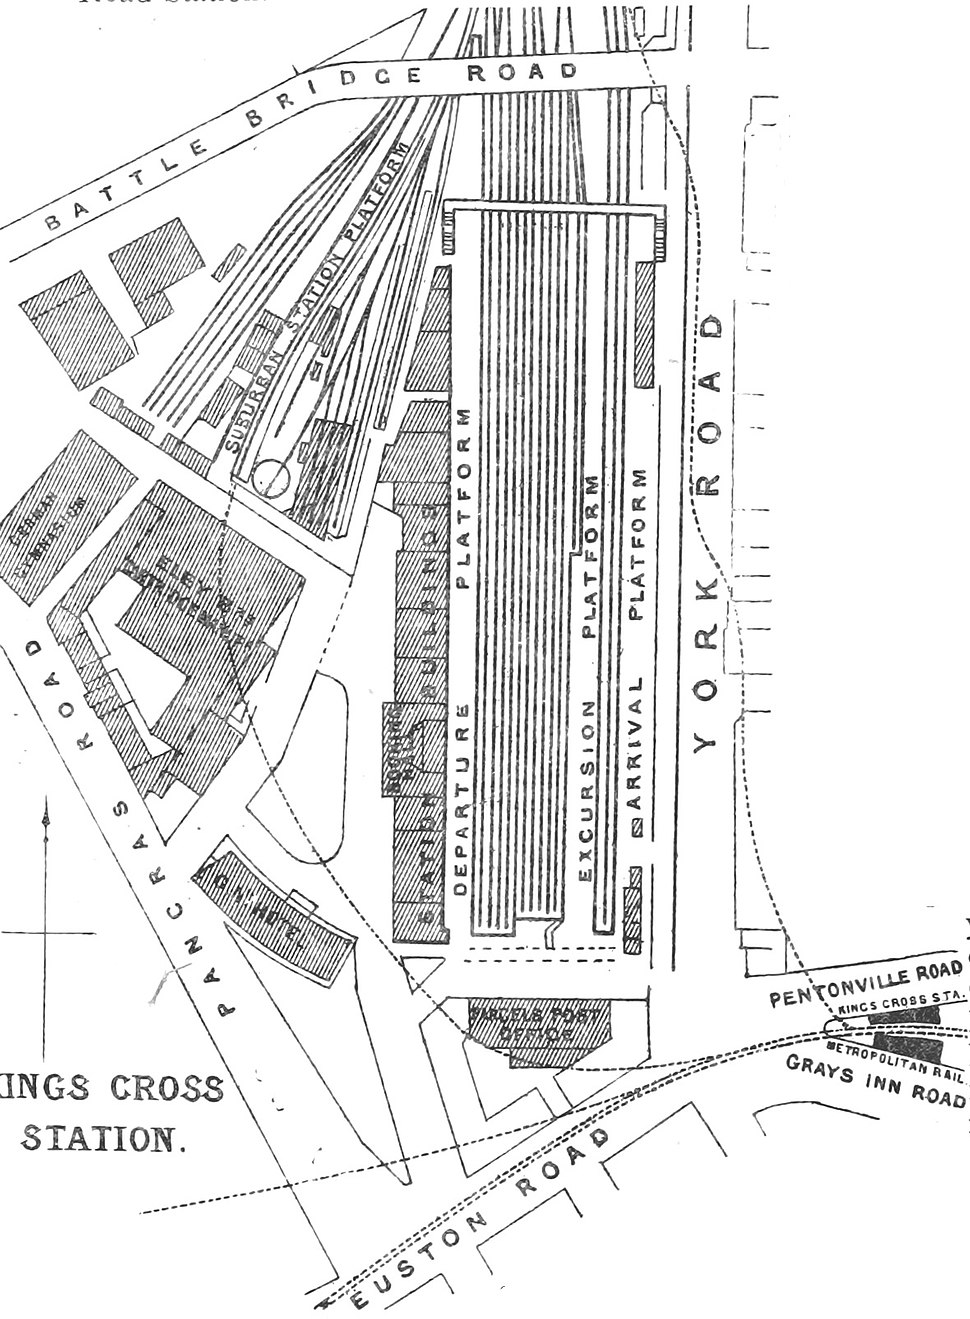 DISTRICT(1888) p138 - King's Cross Station (plan)